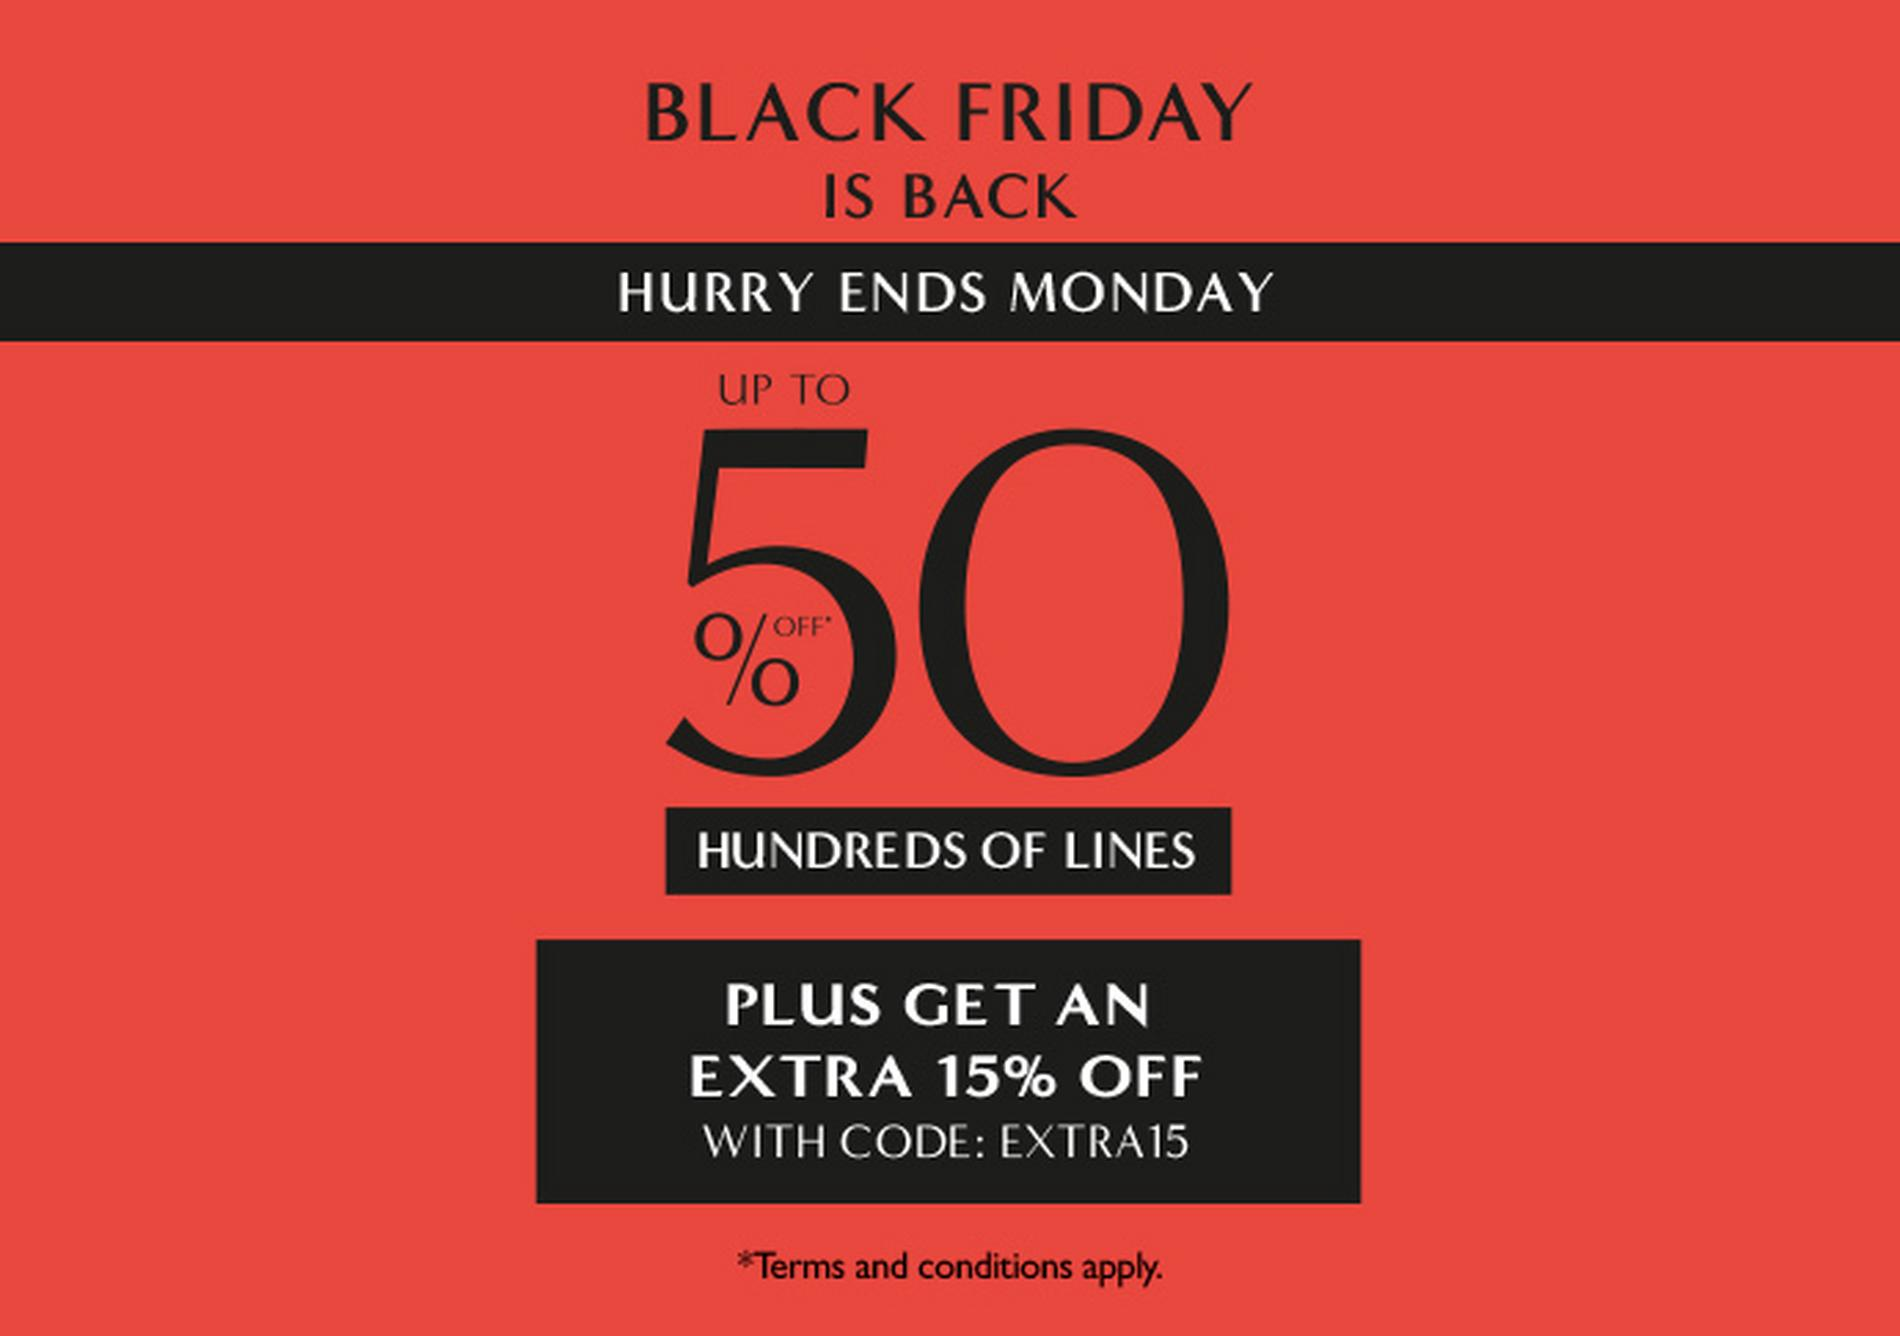 Up to half price on hundreds of lines at Ernest Jones